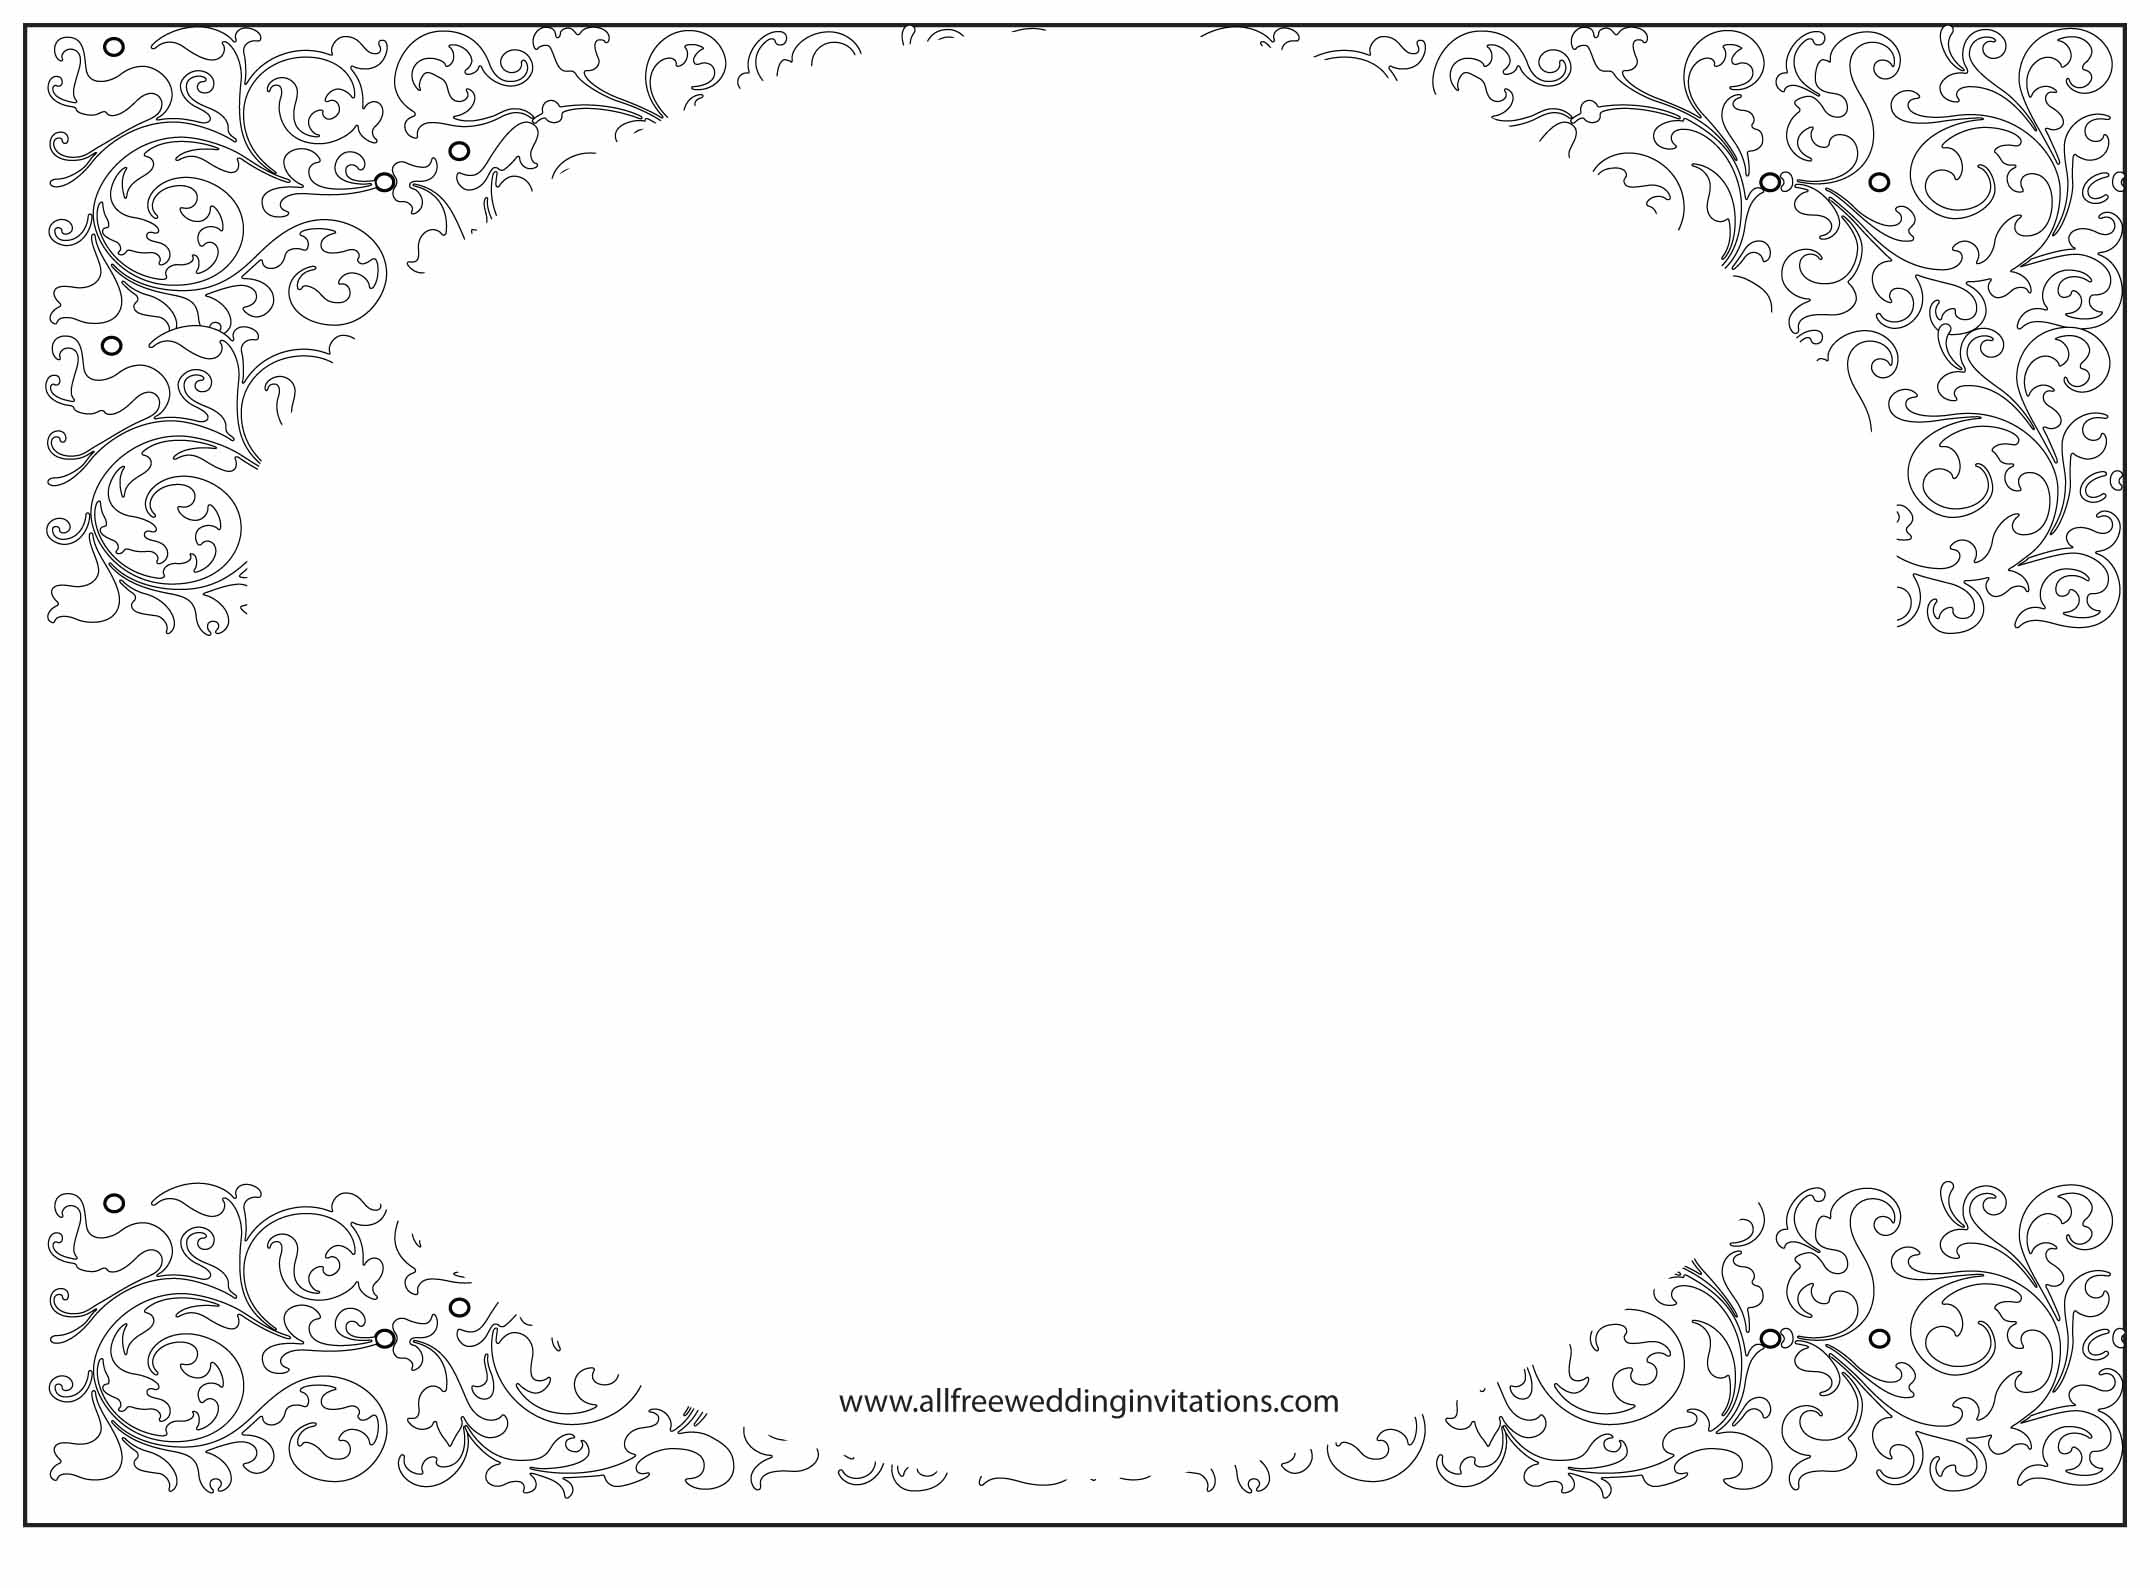 White Wedding - ALL FREE Wedding Invitations